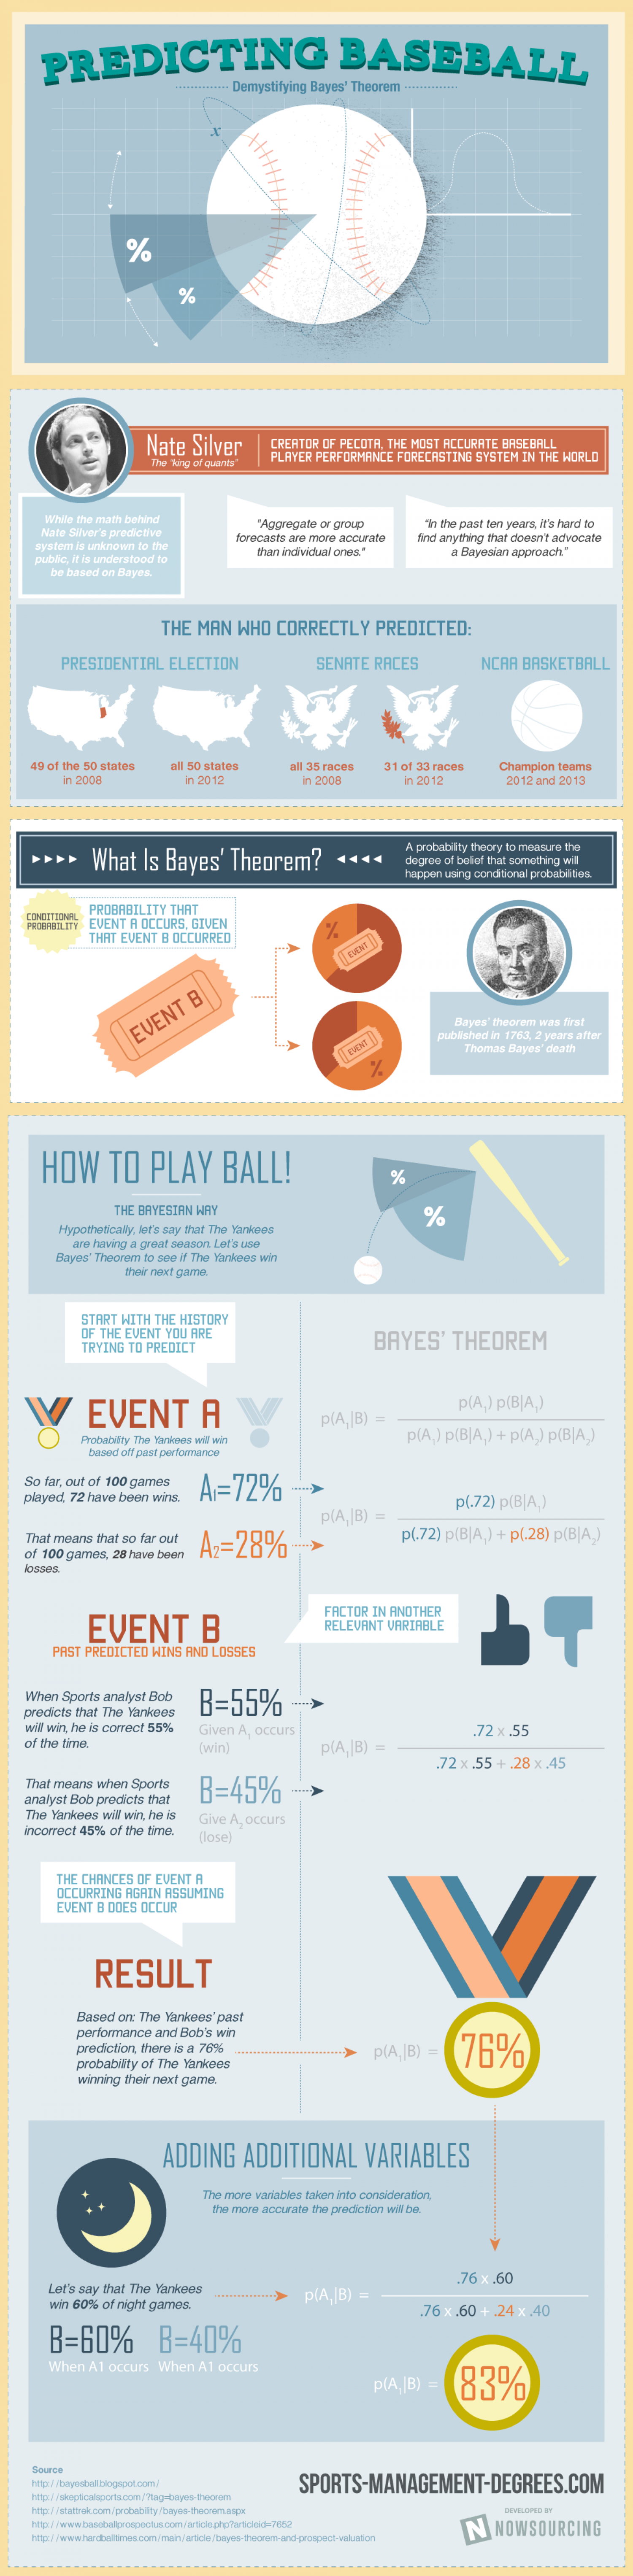 Predicting Baseball: Demystifying Bayes' Theorem Infographic